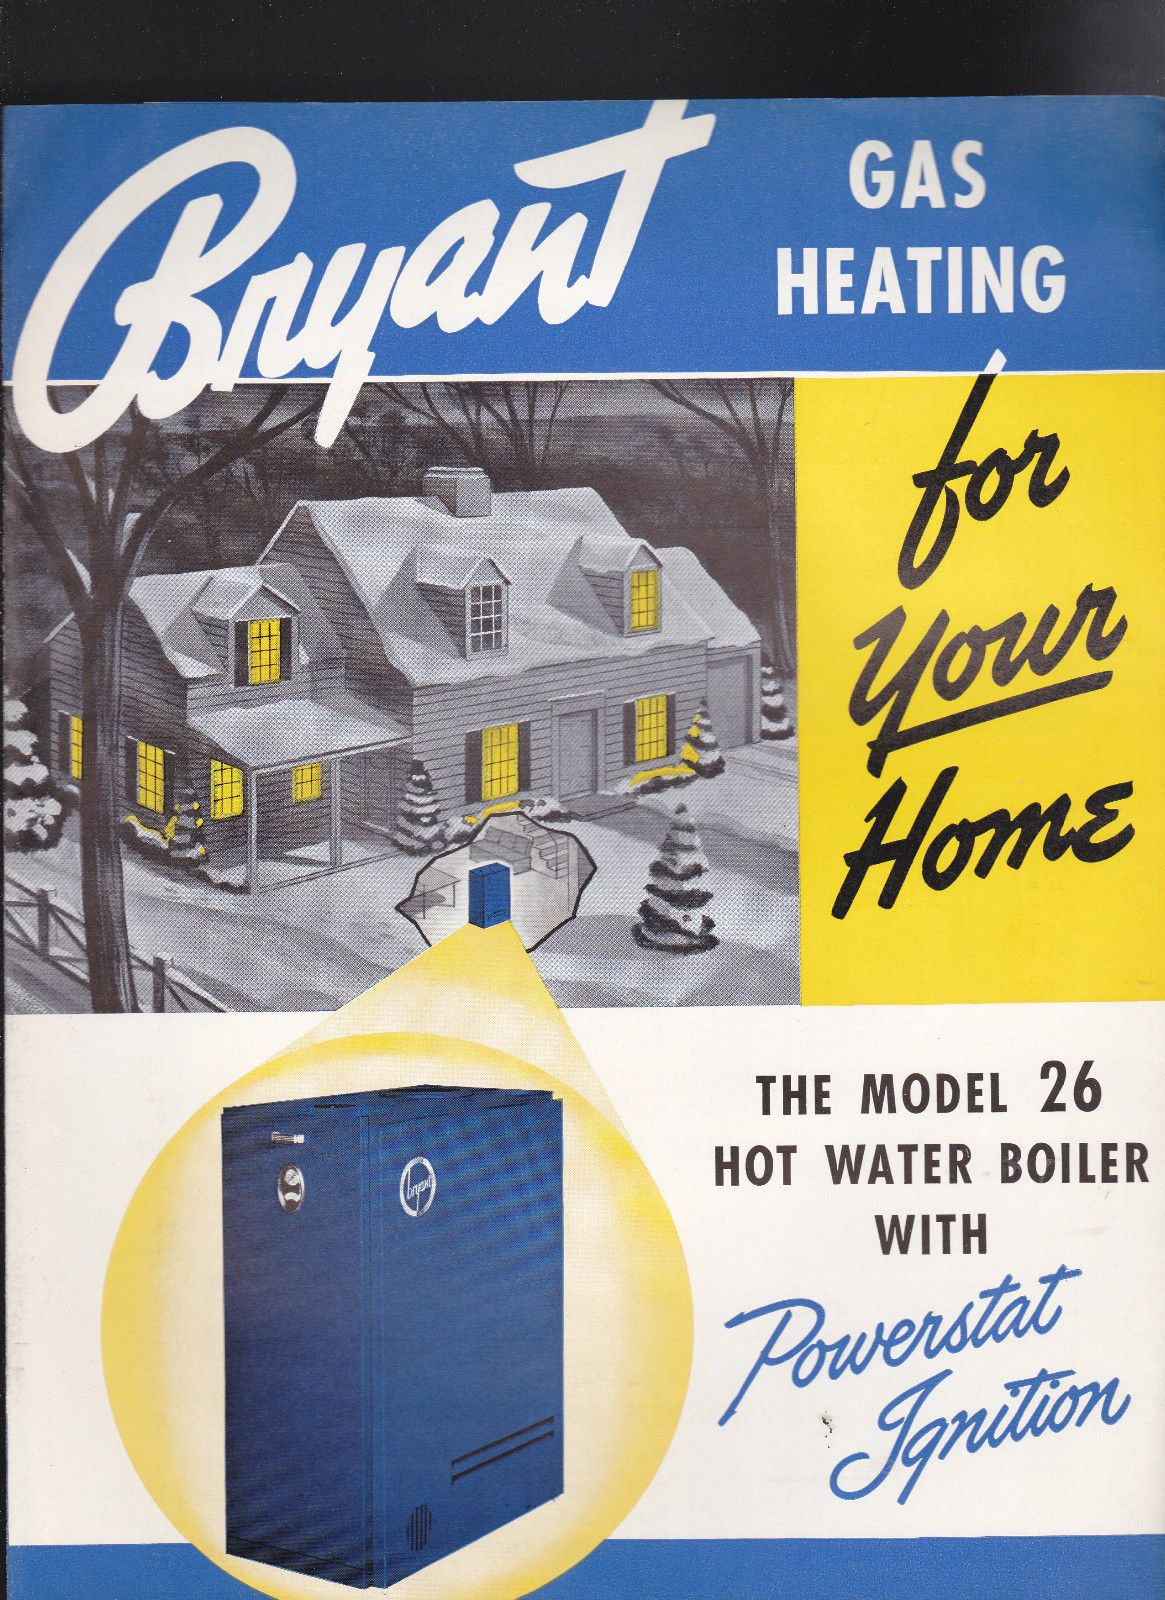 Bryant Gas Heating for Your Home Model 26 Hot Water Boiler